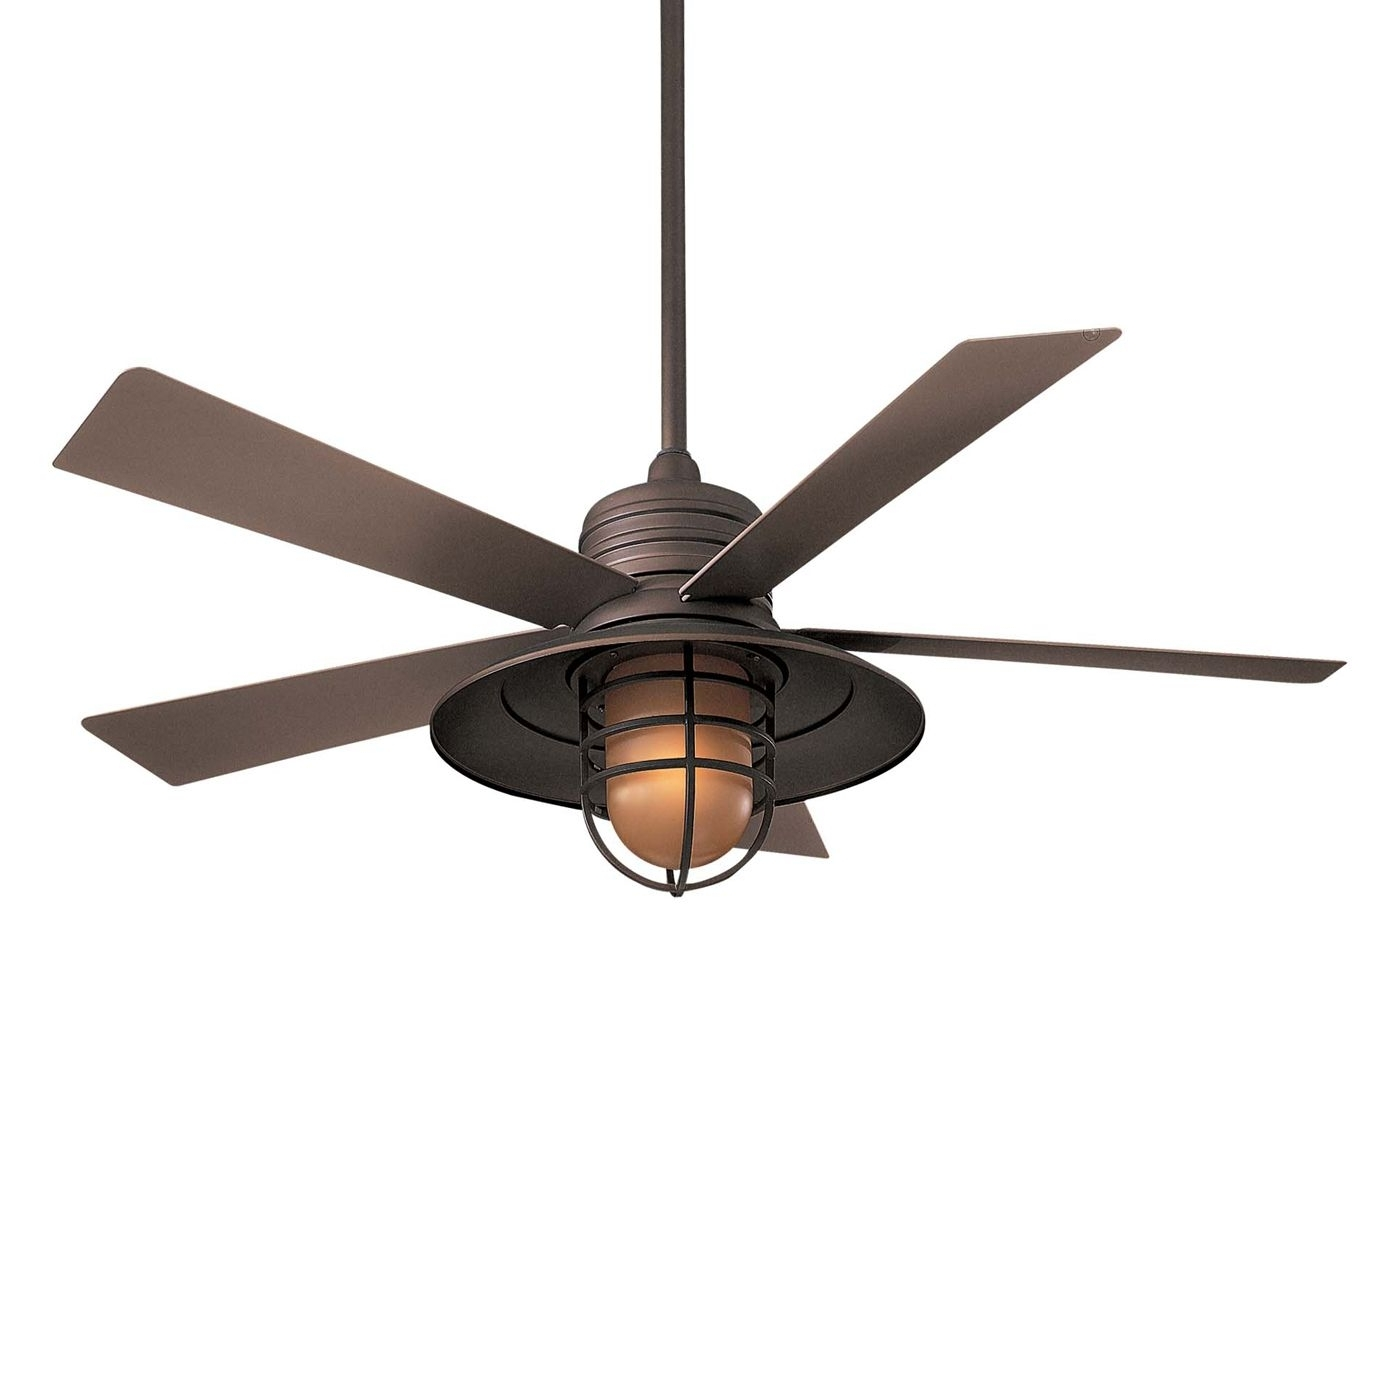 Minka Aire Outdoor Ceiling Fans With Lights Within Newest Minka Aire F582 54 In Rainman™ Indoor/outdoor Ceiling Fan At Atg (View 9 of 20)